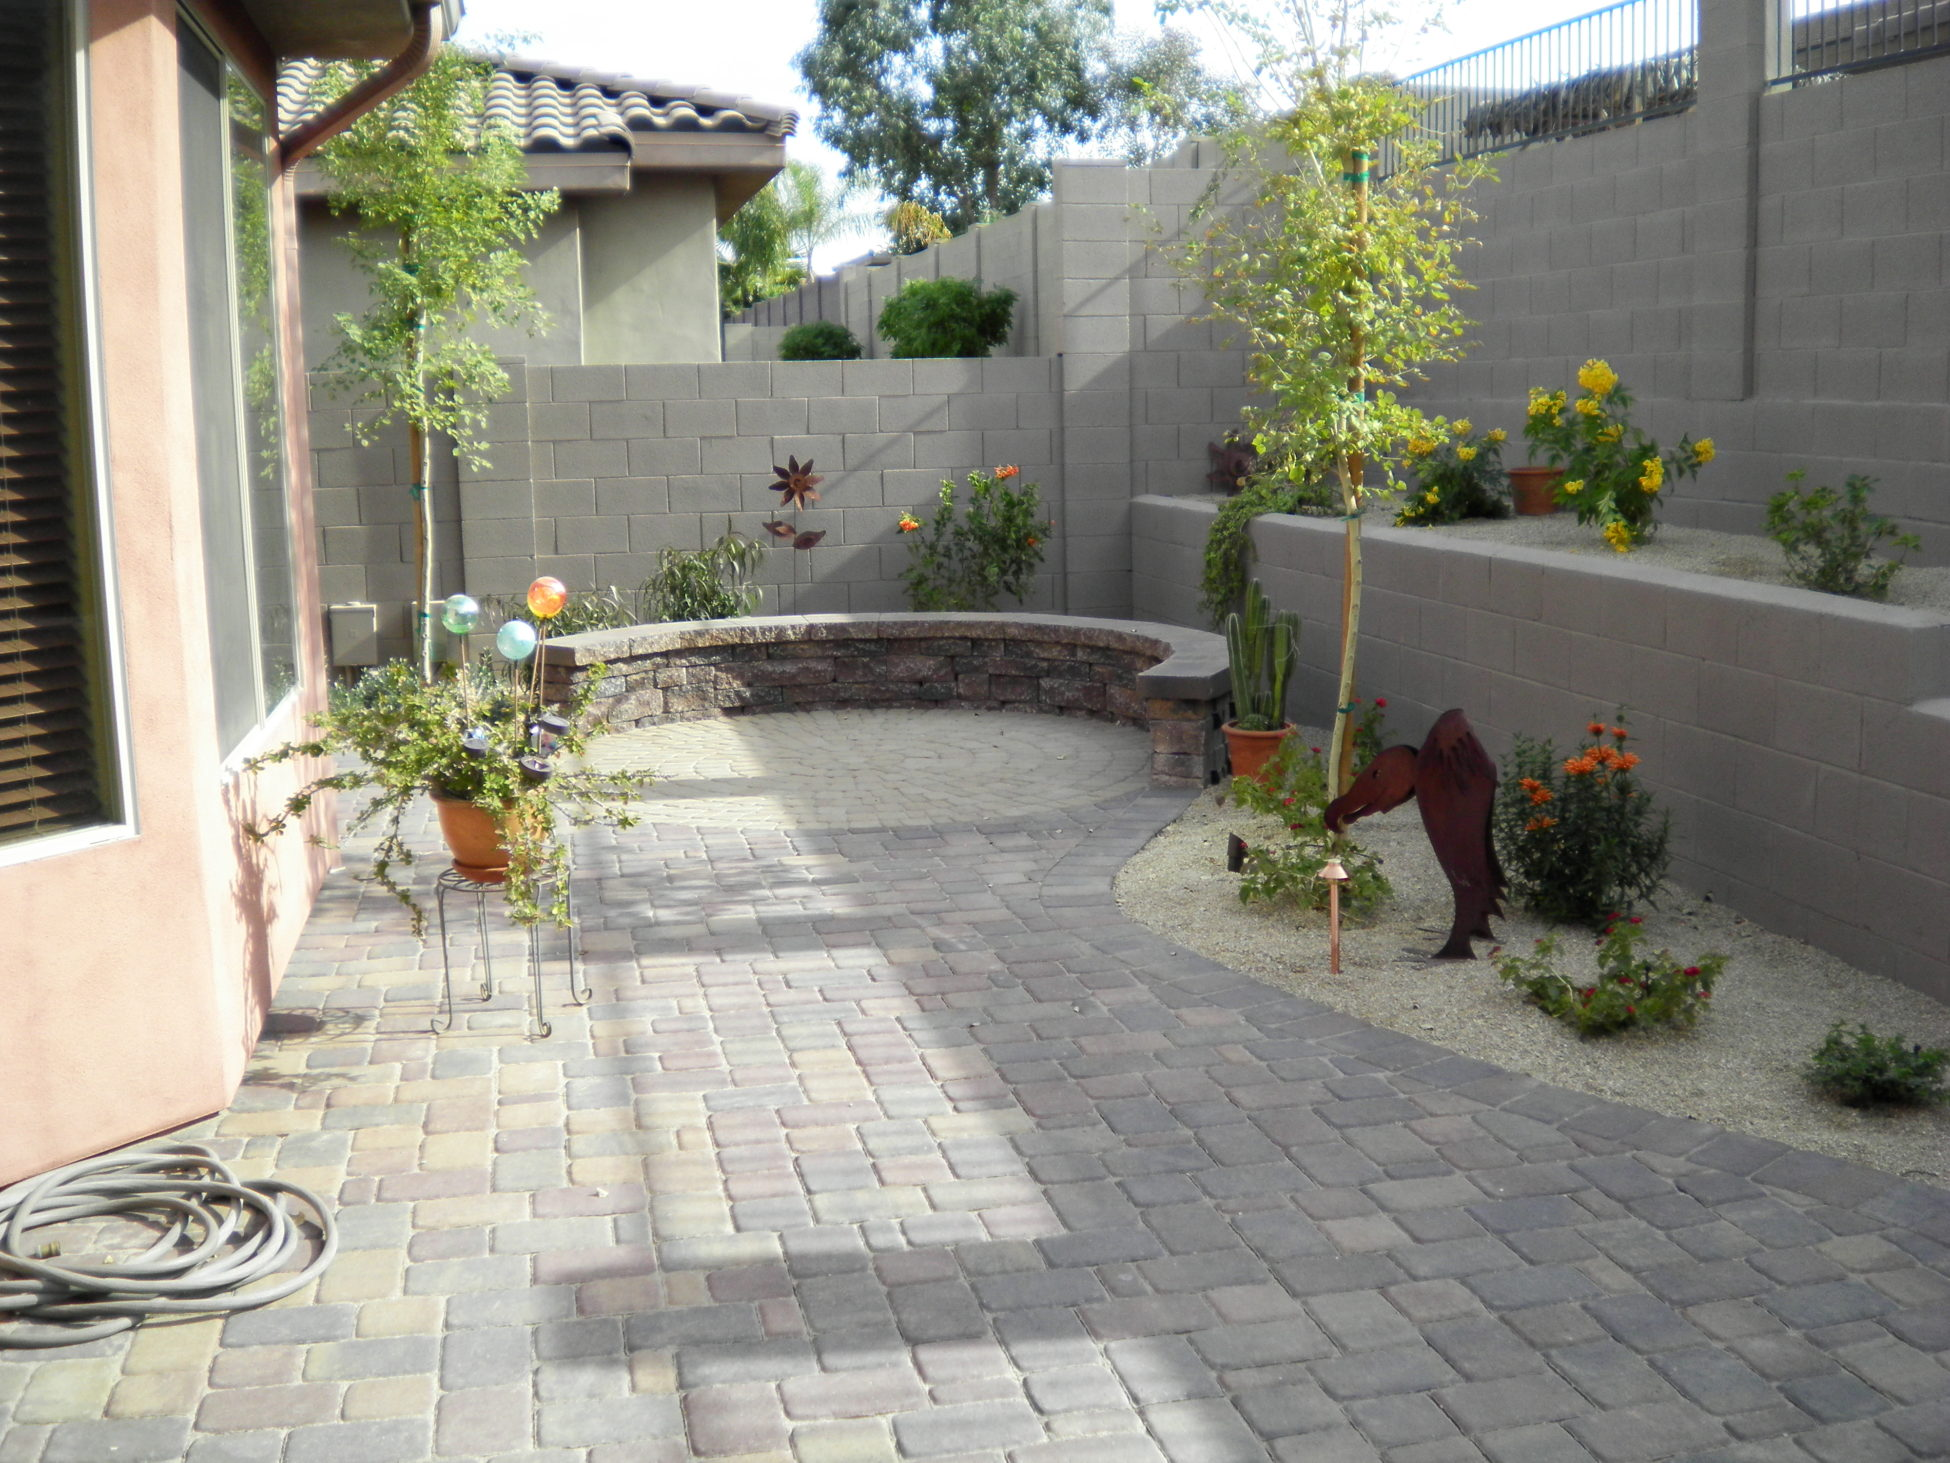 Paver Designs and Paver Ideas for Your Backyard Patios on Yard Paver Ideas  id=39897